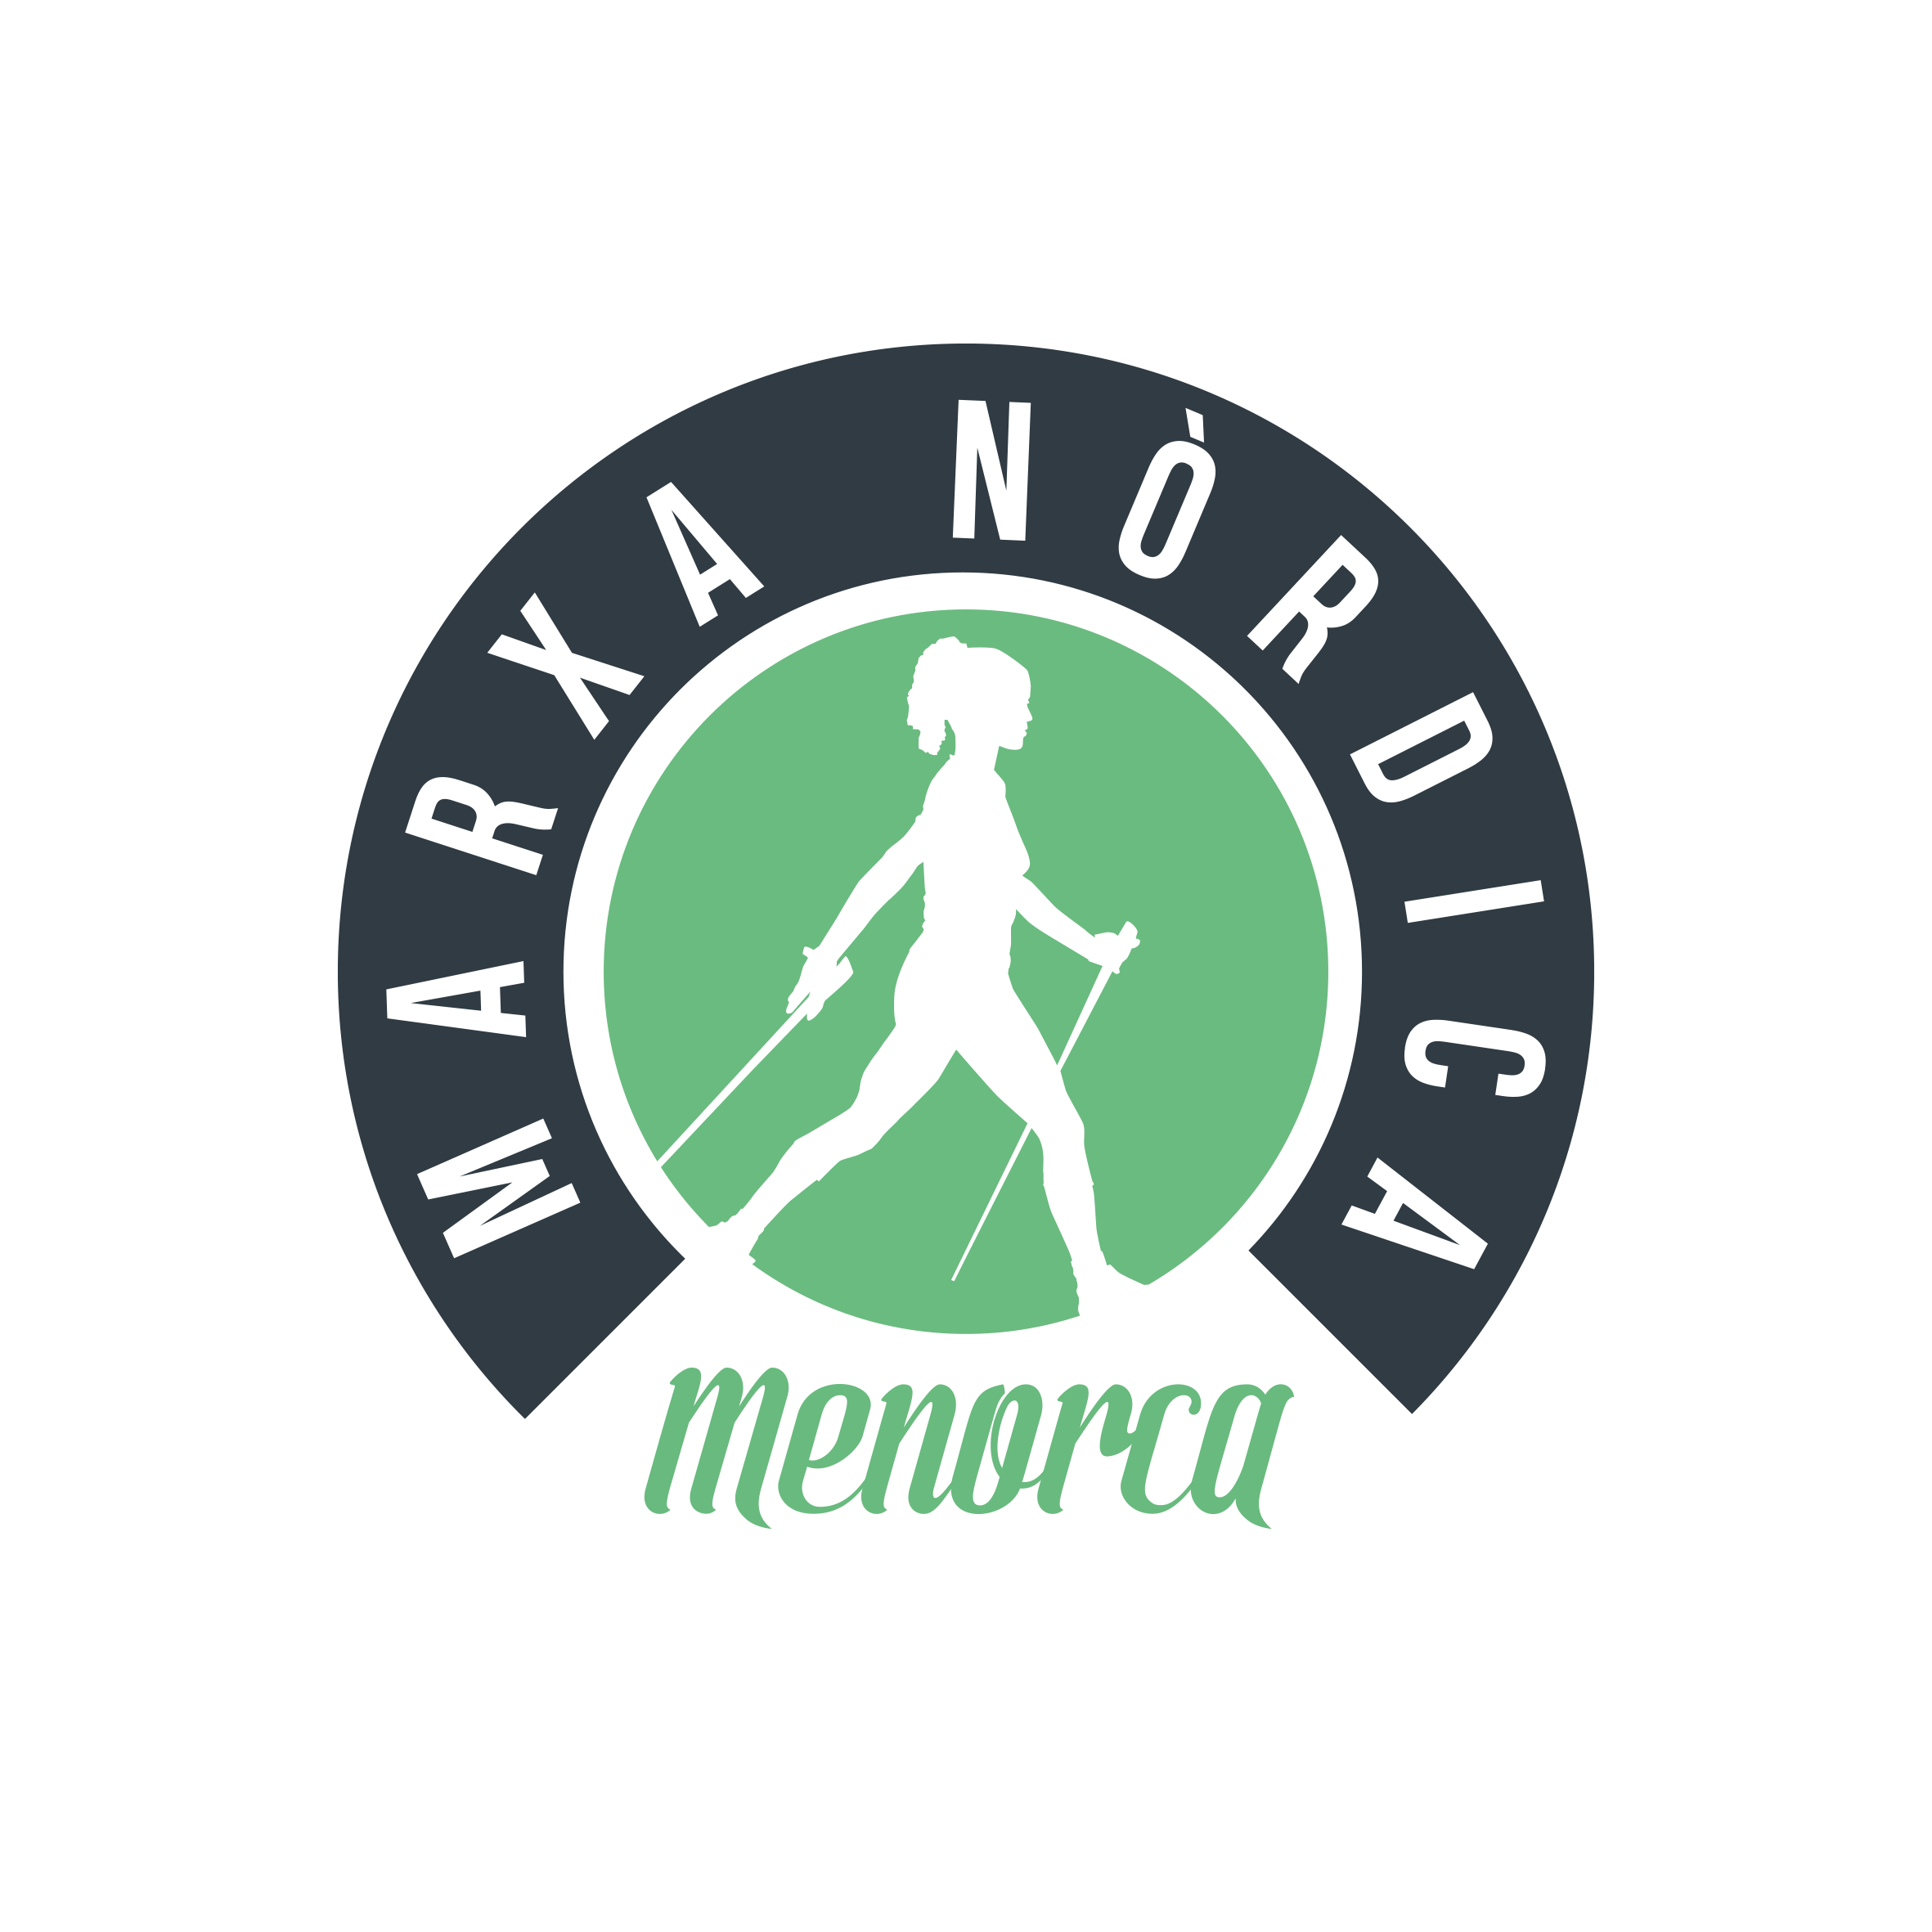 Menorca Nordic Walking